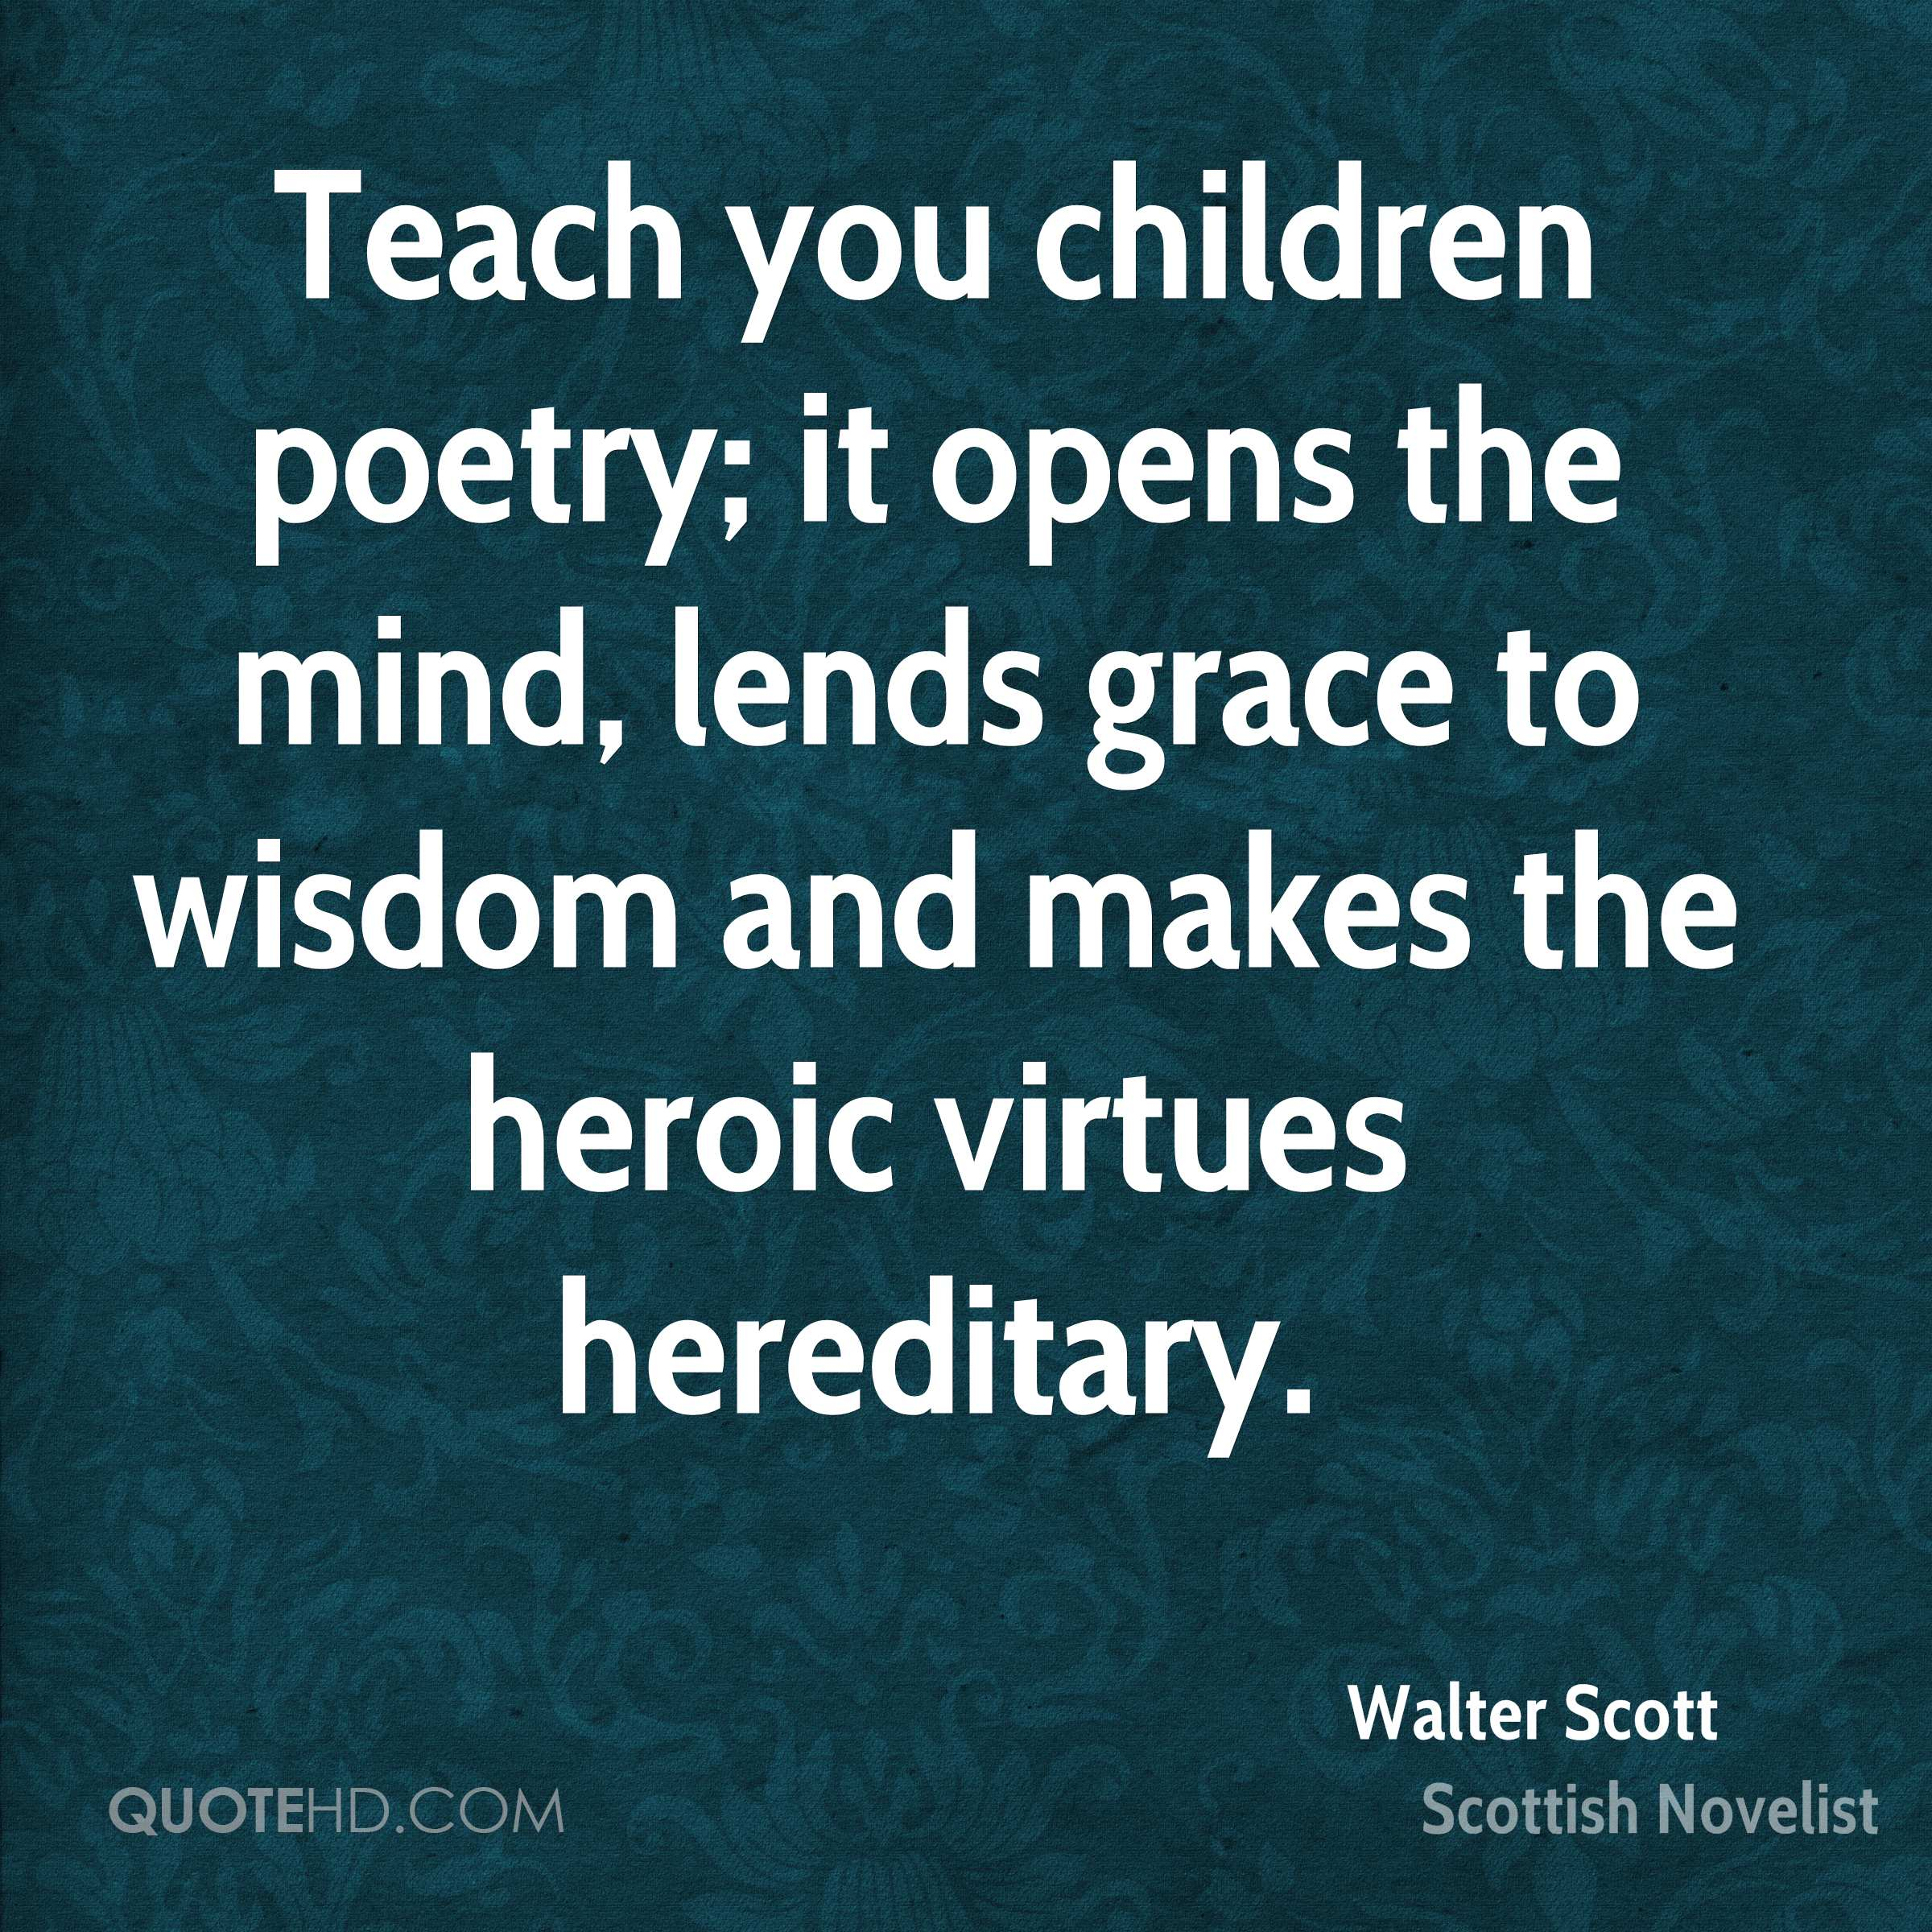 Teach you children poetry; it opens the mind, lends grace to wisdom and makes the heroic virtues hereditary.